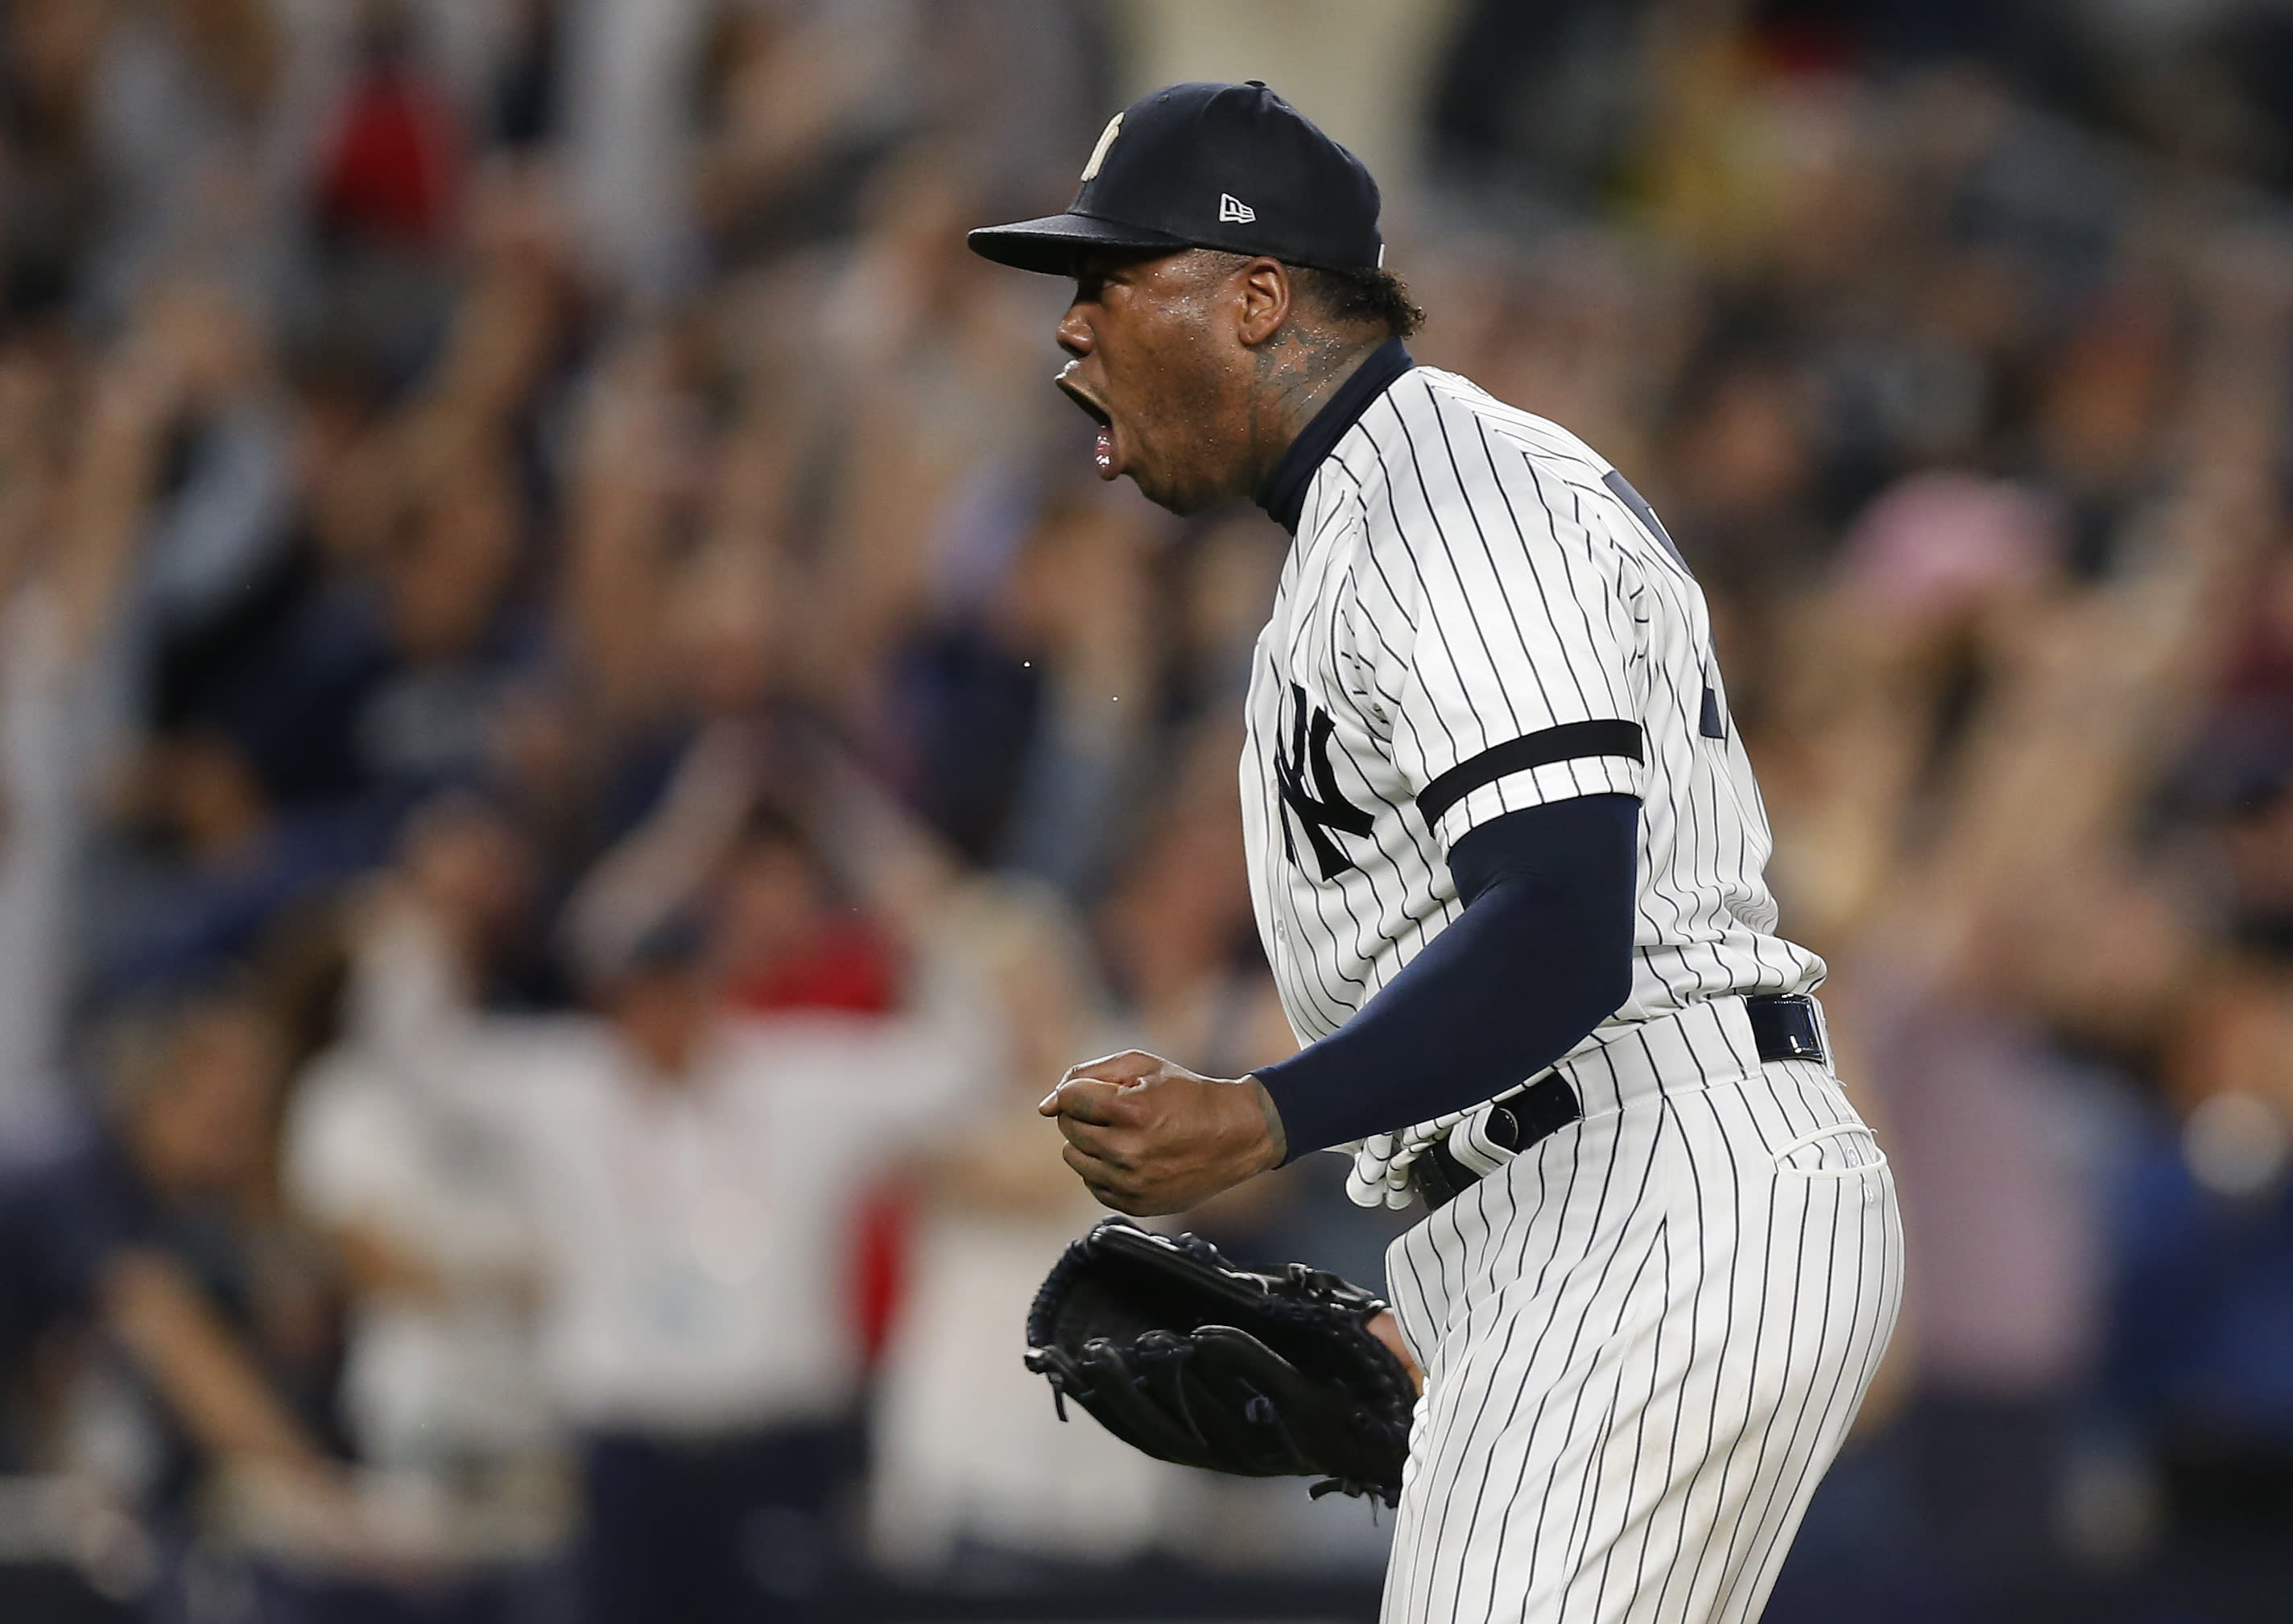 Yankees closer Aroldis Chapman had more heat in Game 3 ...